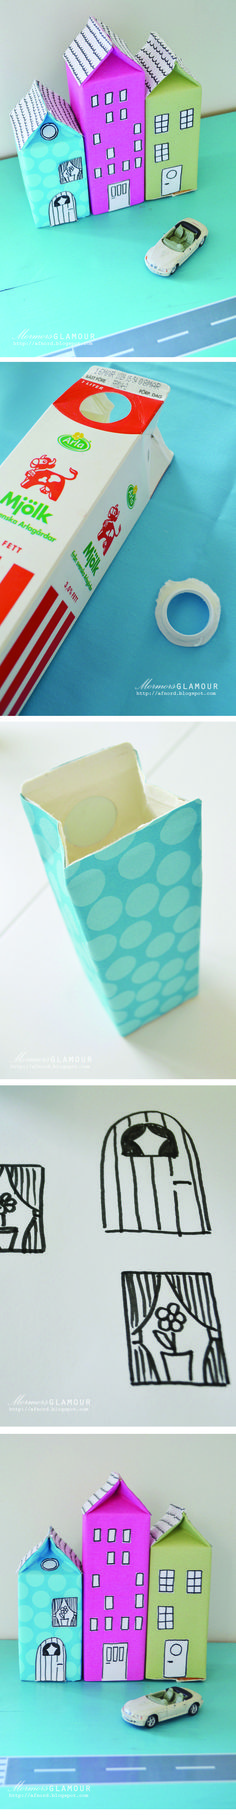 Upcycle your milkboxes - cute idea for Earth Day, Recycling and city life. Recommended by Charlotte's Clips